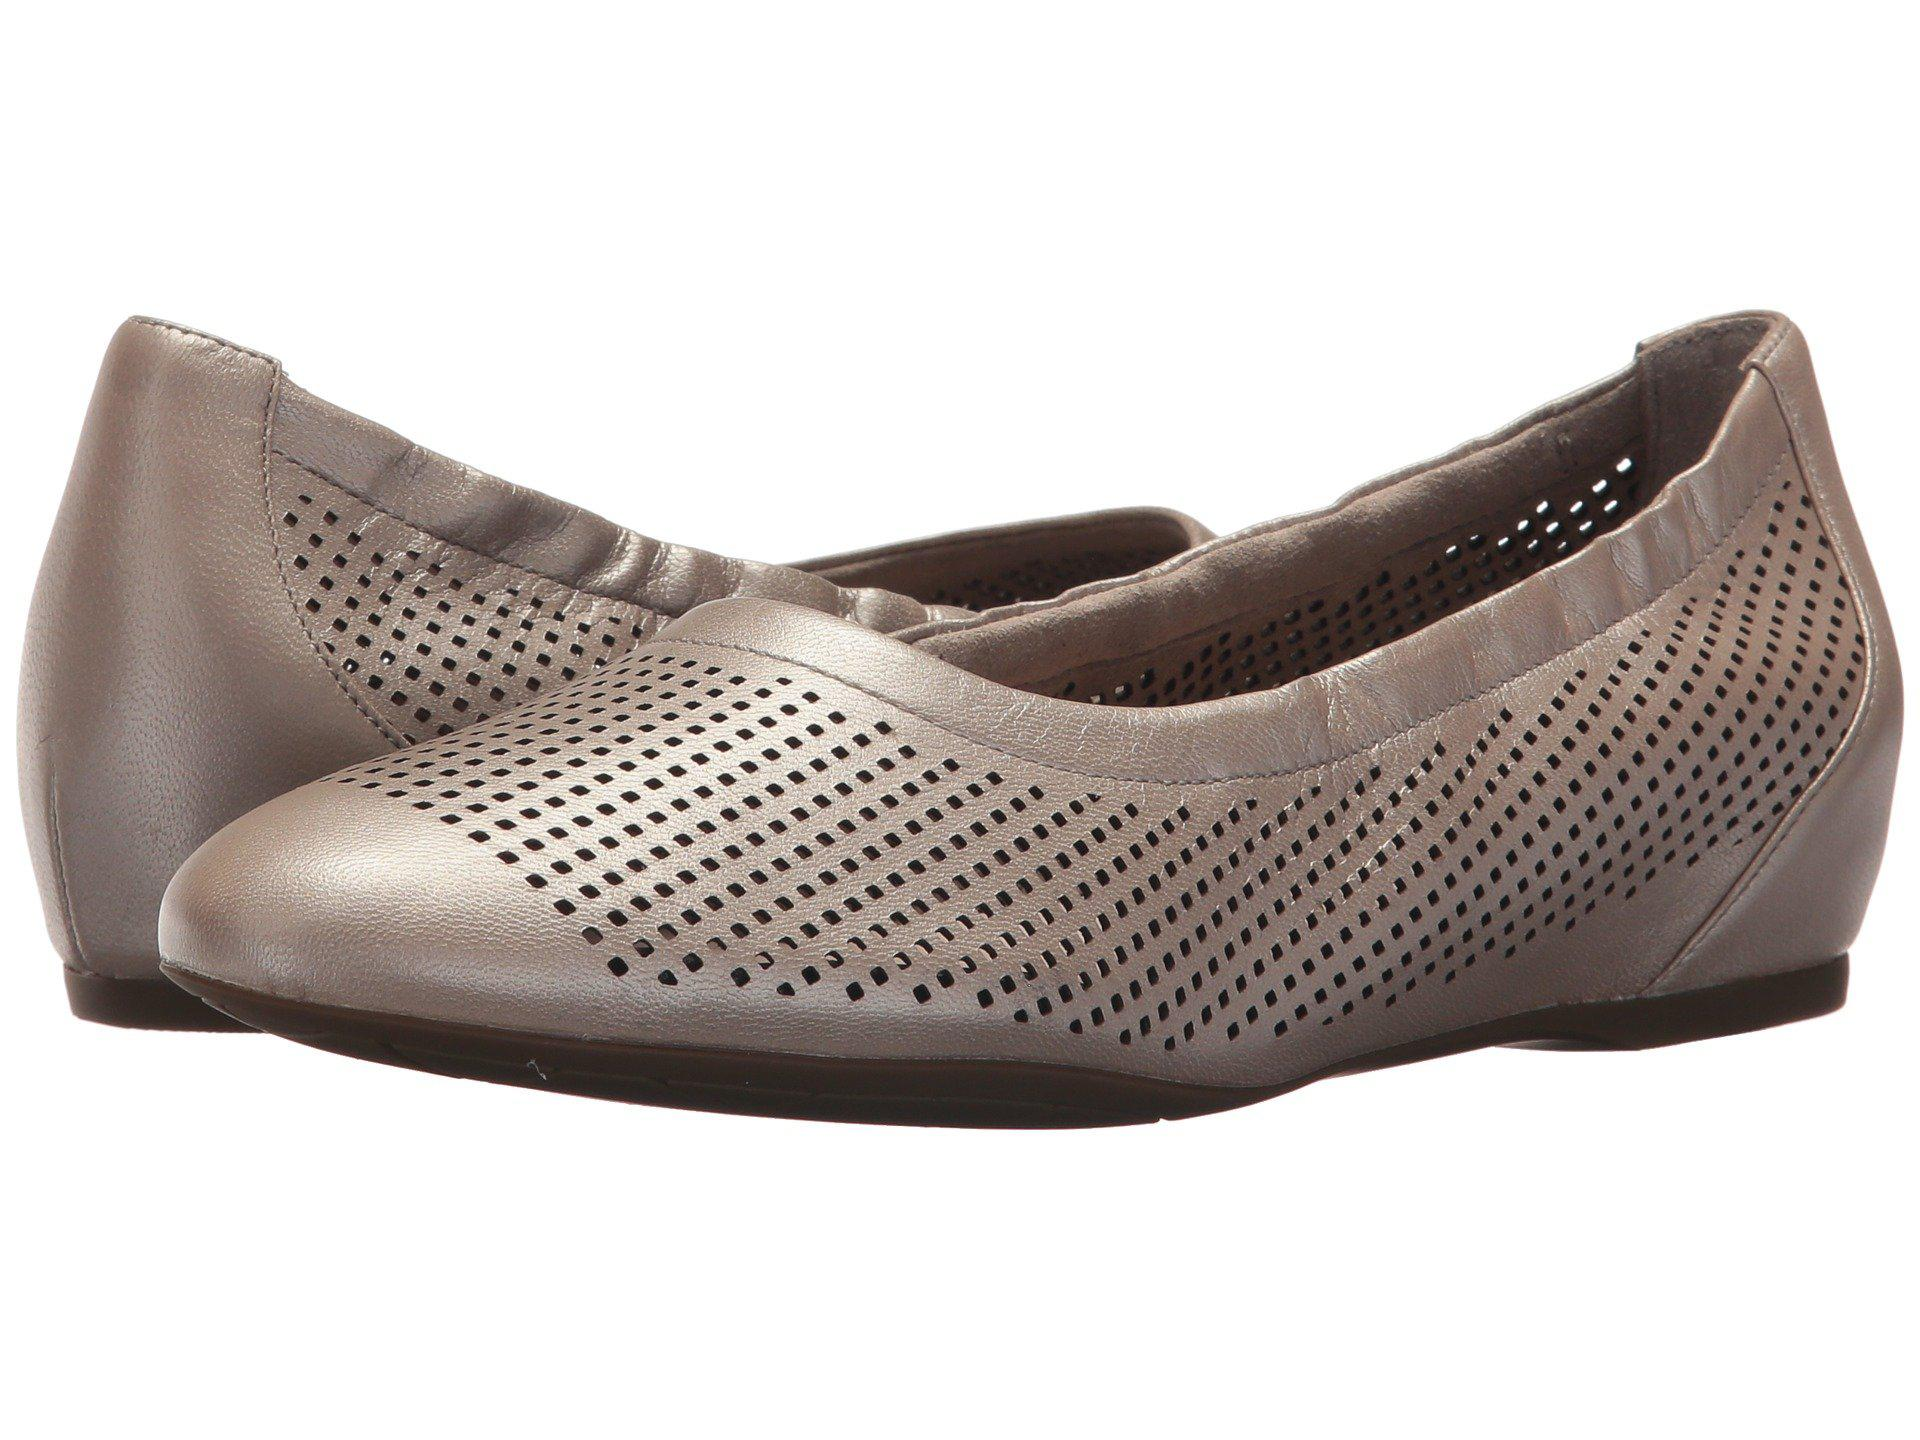 Rockport Total Motion 20mm Hidden Wedge Luxe Perf Slip-On eS6RfZ